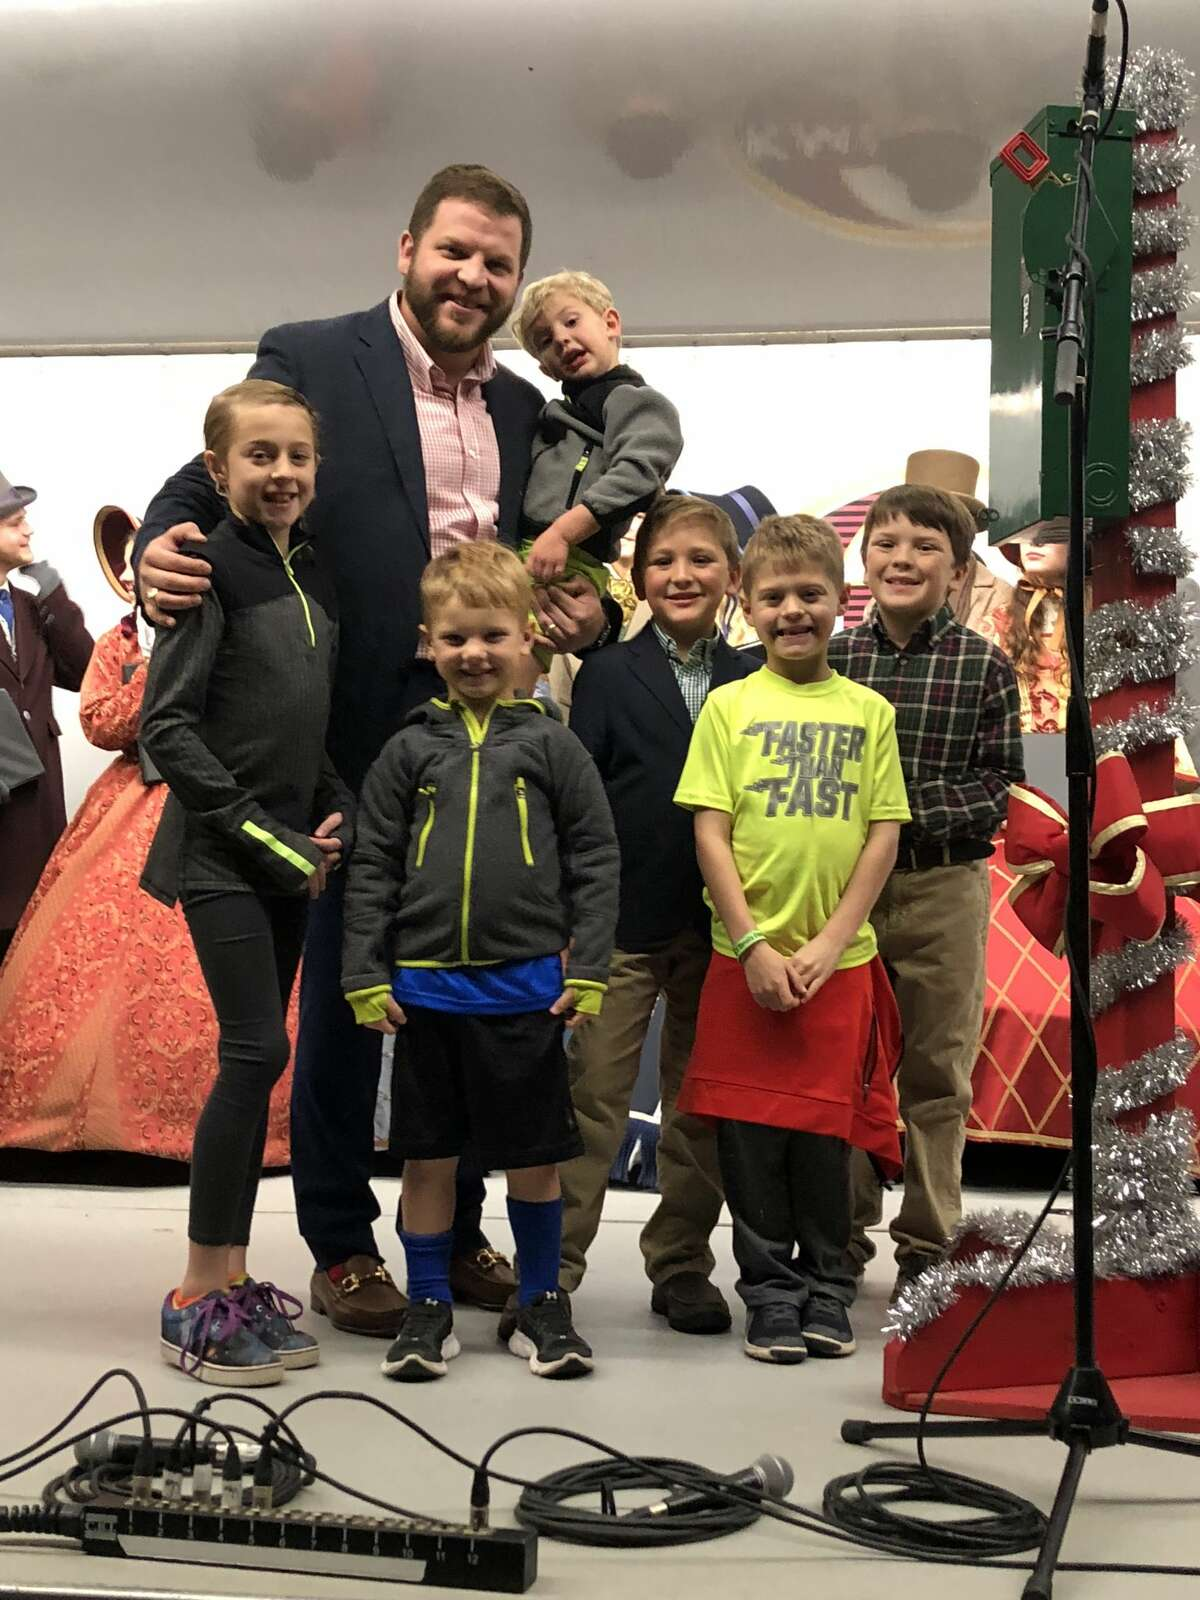 Tree lighting: Spencer Robnett, back row left, and Weston Reeves; and Madison Fietz, front row from left, Cline Reeves, Connor Goodwin, Jett Fietz and Sloan Goodwin